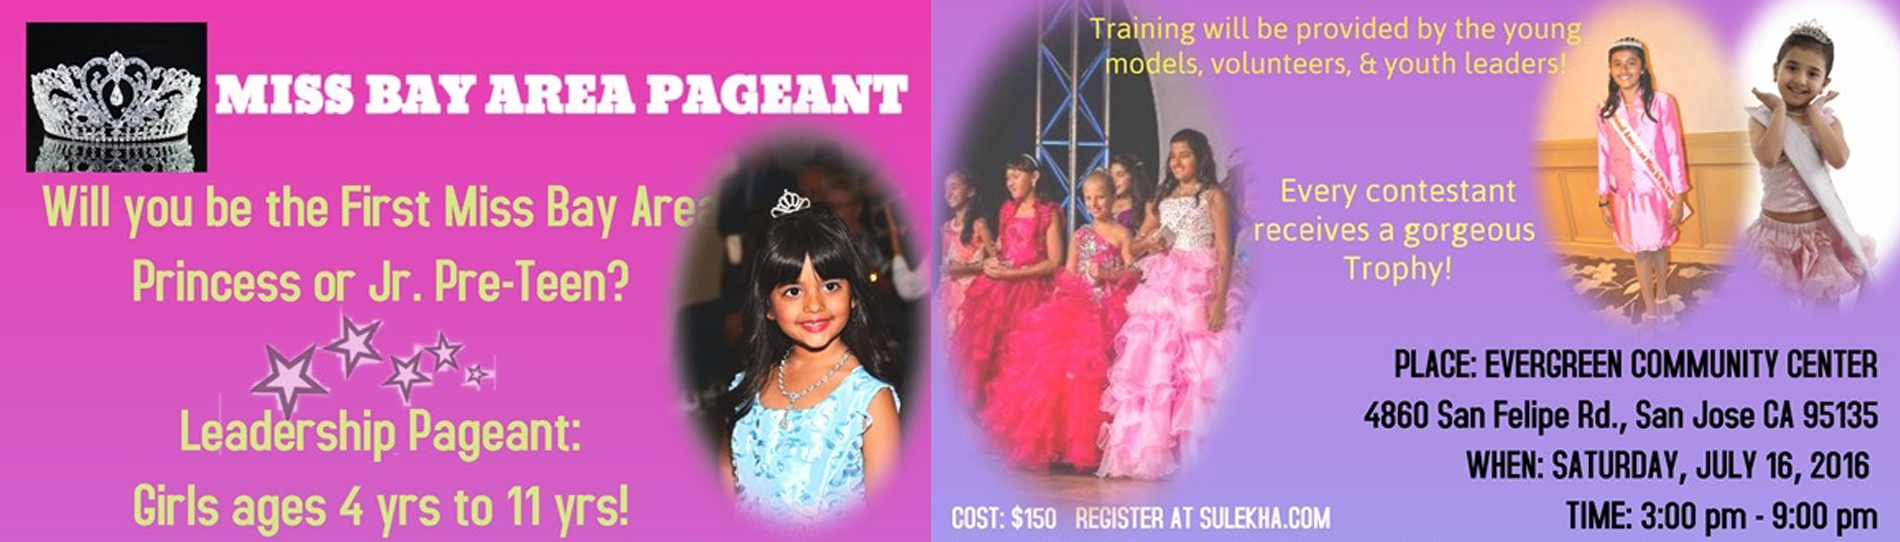 MISS BAY AREA PAGEANT | EventMozo